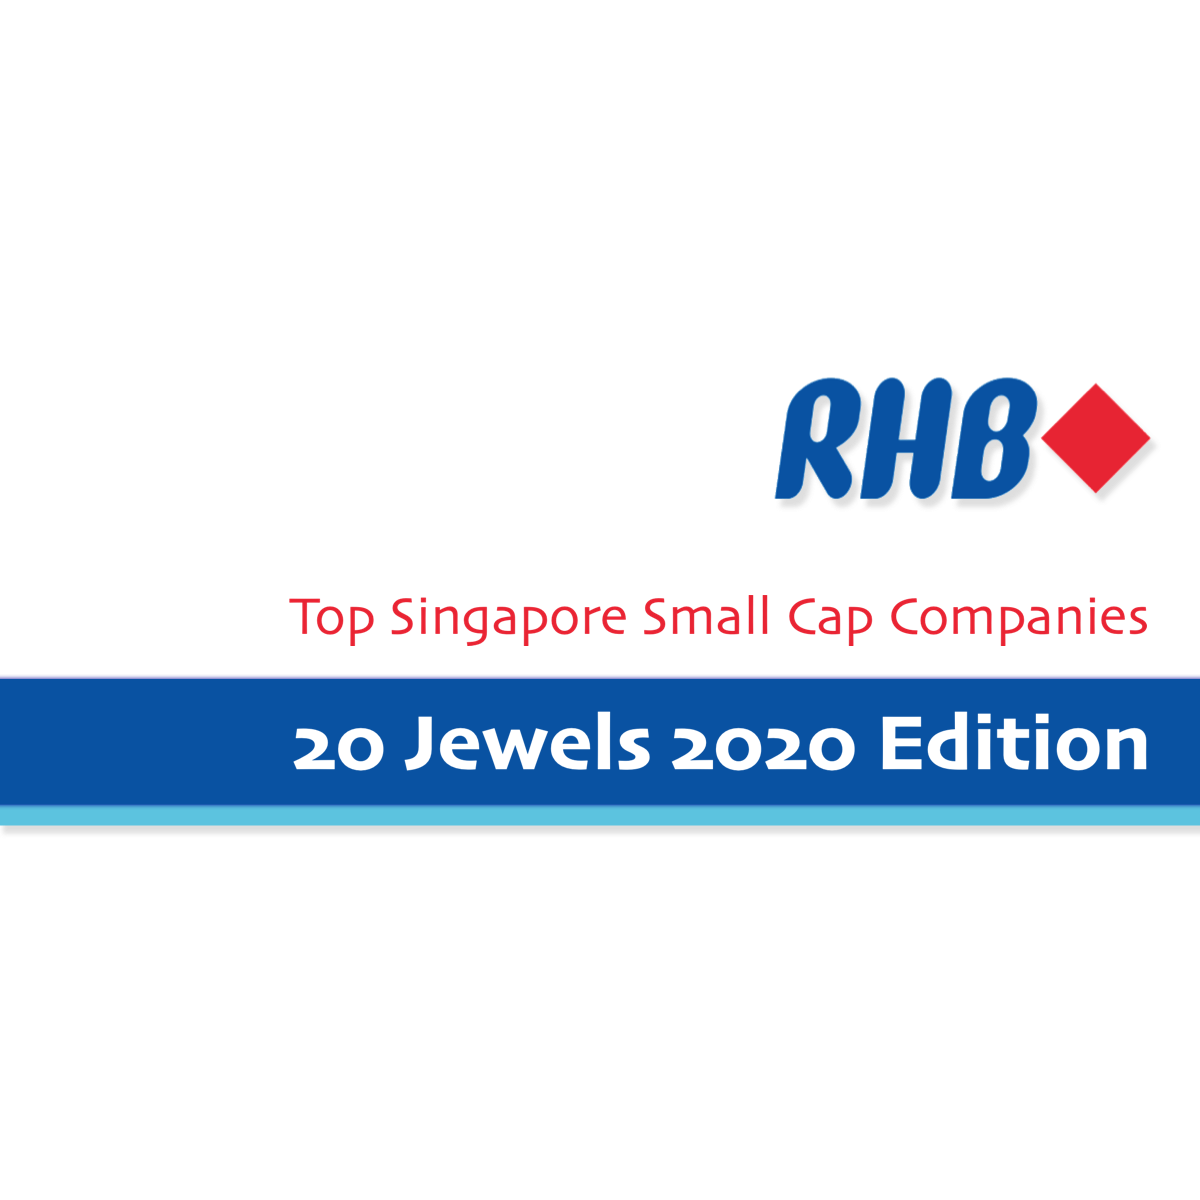 20 Jewels 2020 - Top Singapore Small Cap Companies - RHB Invest | SGinvestors.io